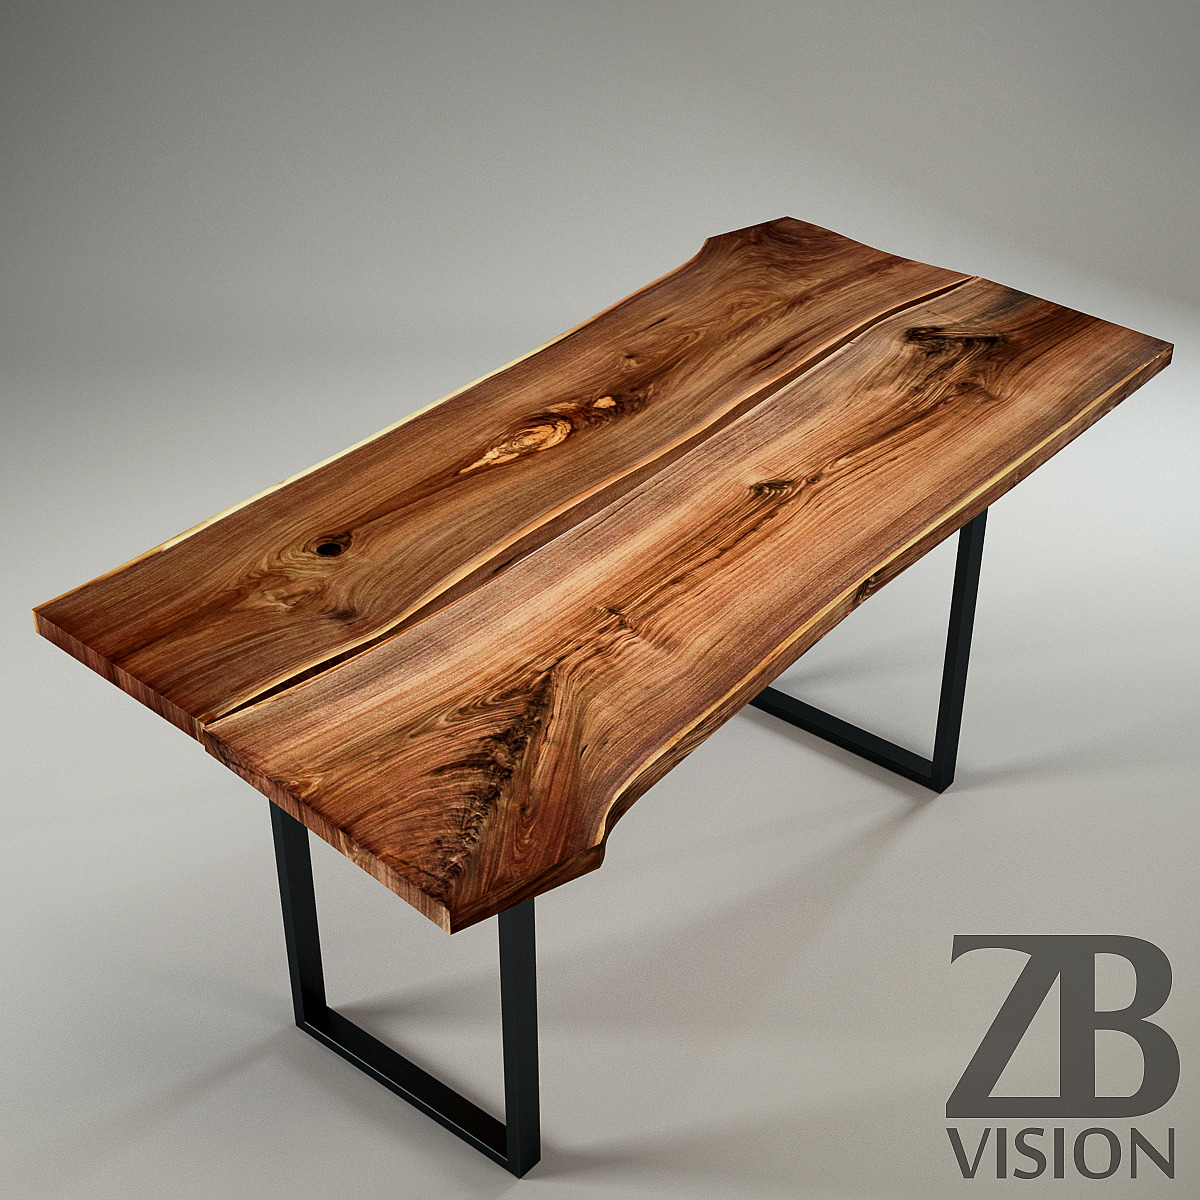 Wood Slab Table By IGN Design Switzerland Luckyfox